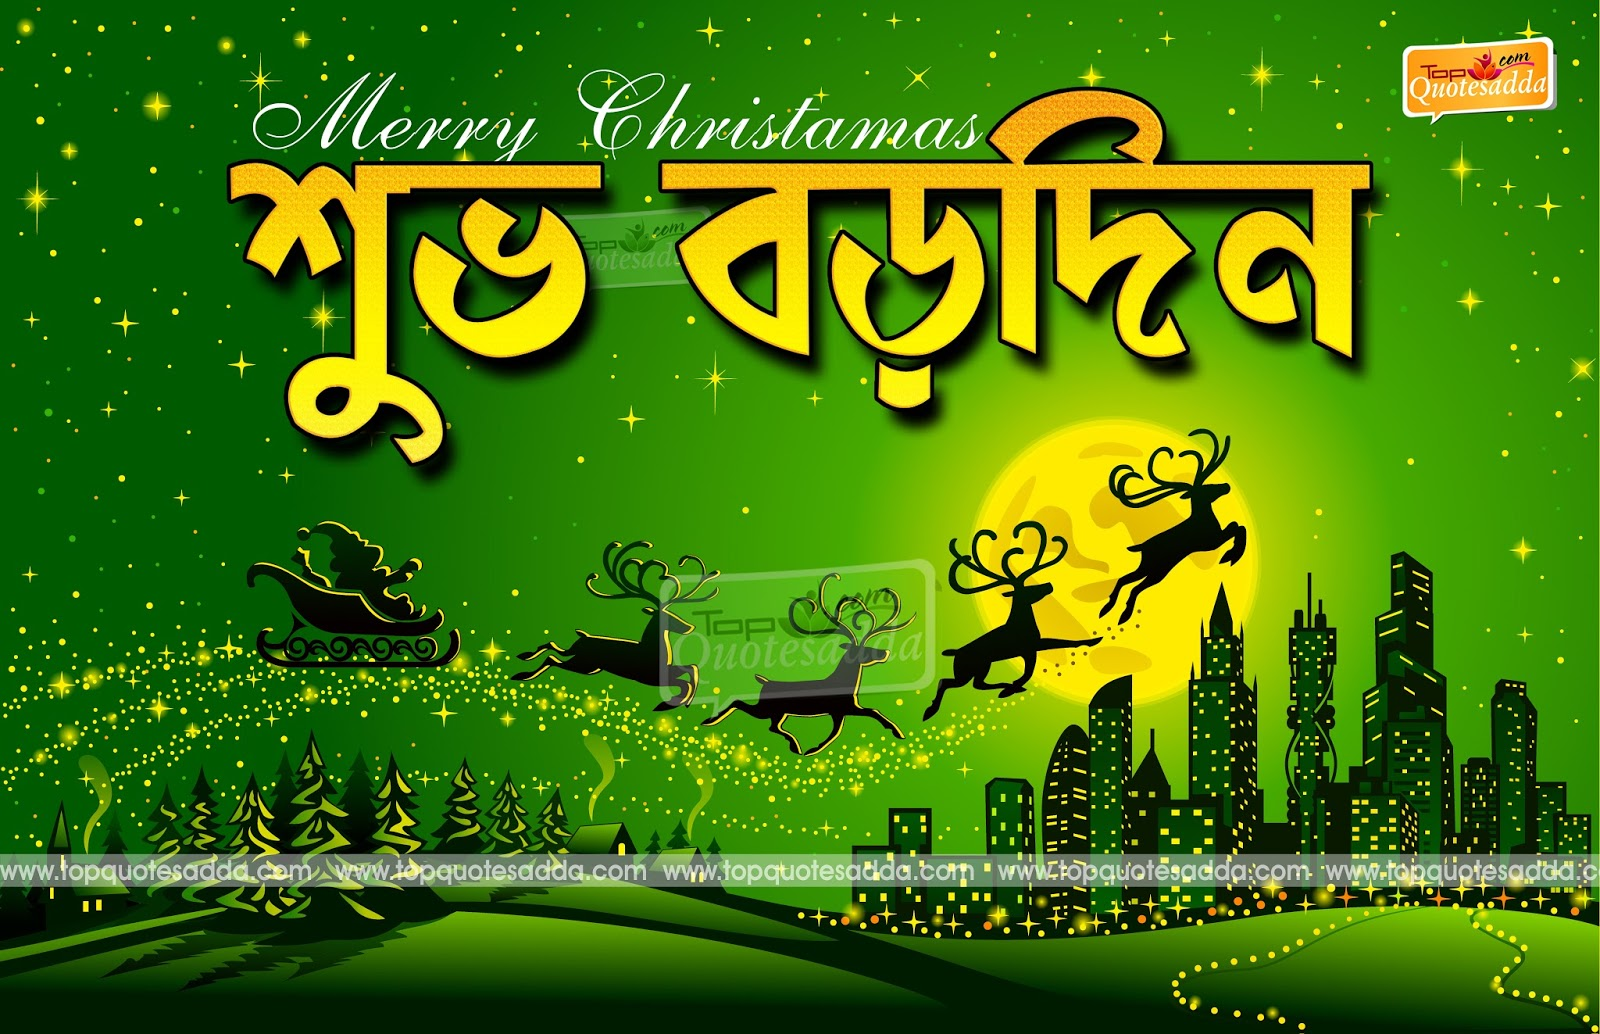 Bengali Images Of Christmas Greetings For Facebook Topquotesadda